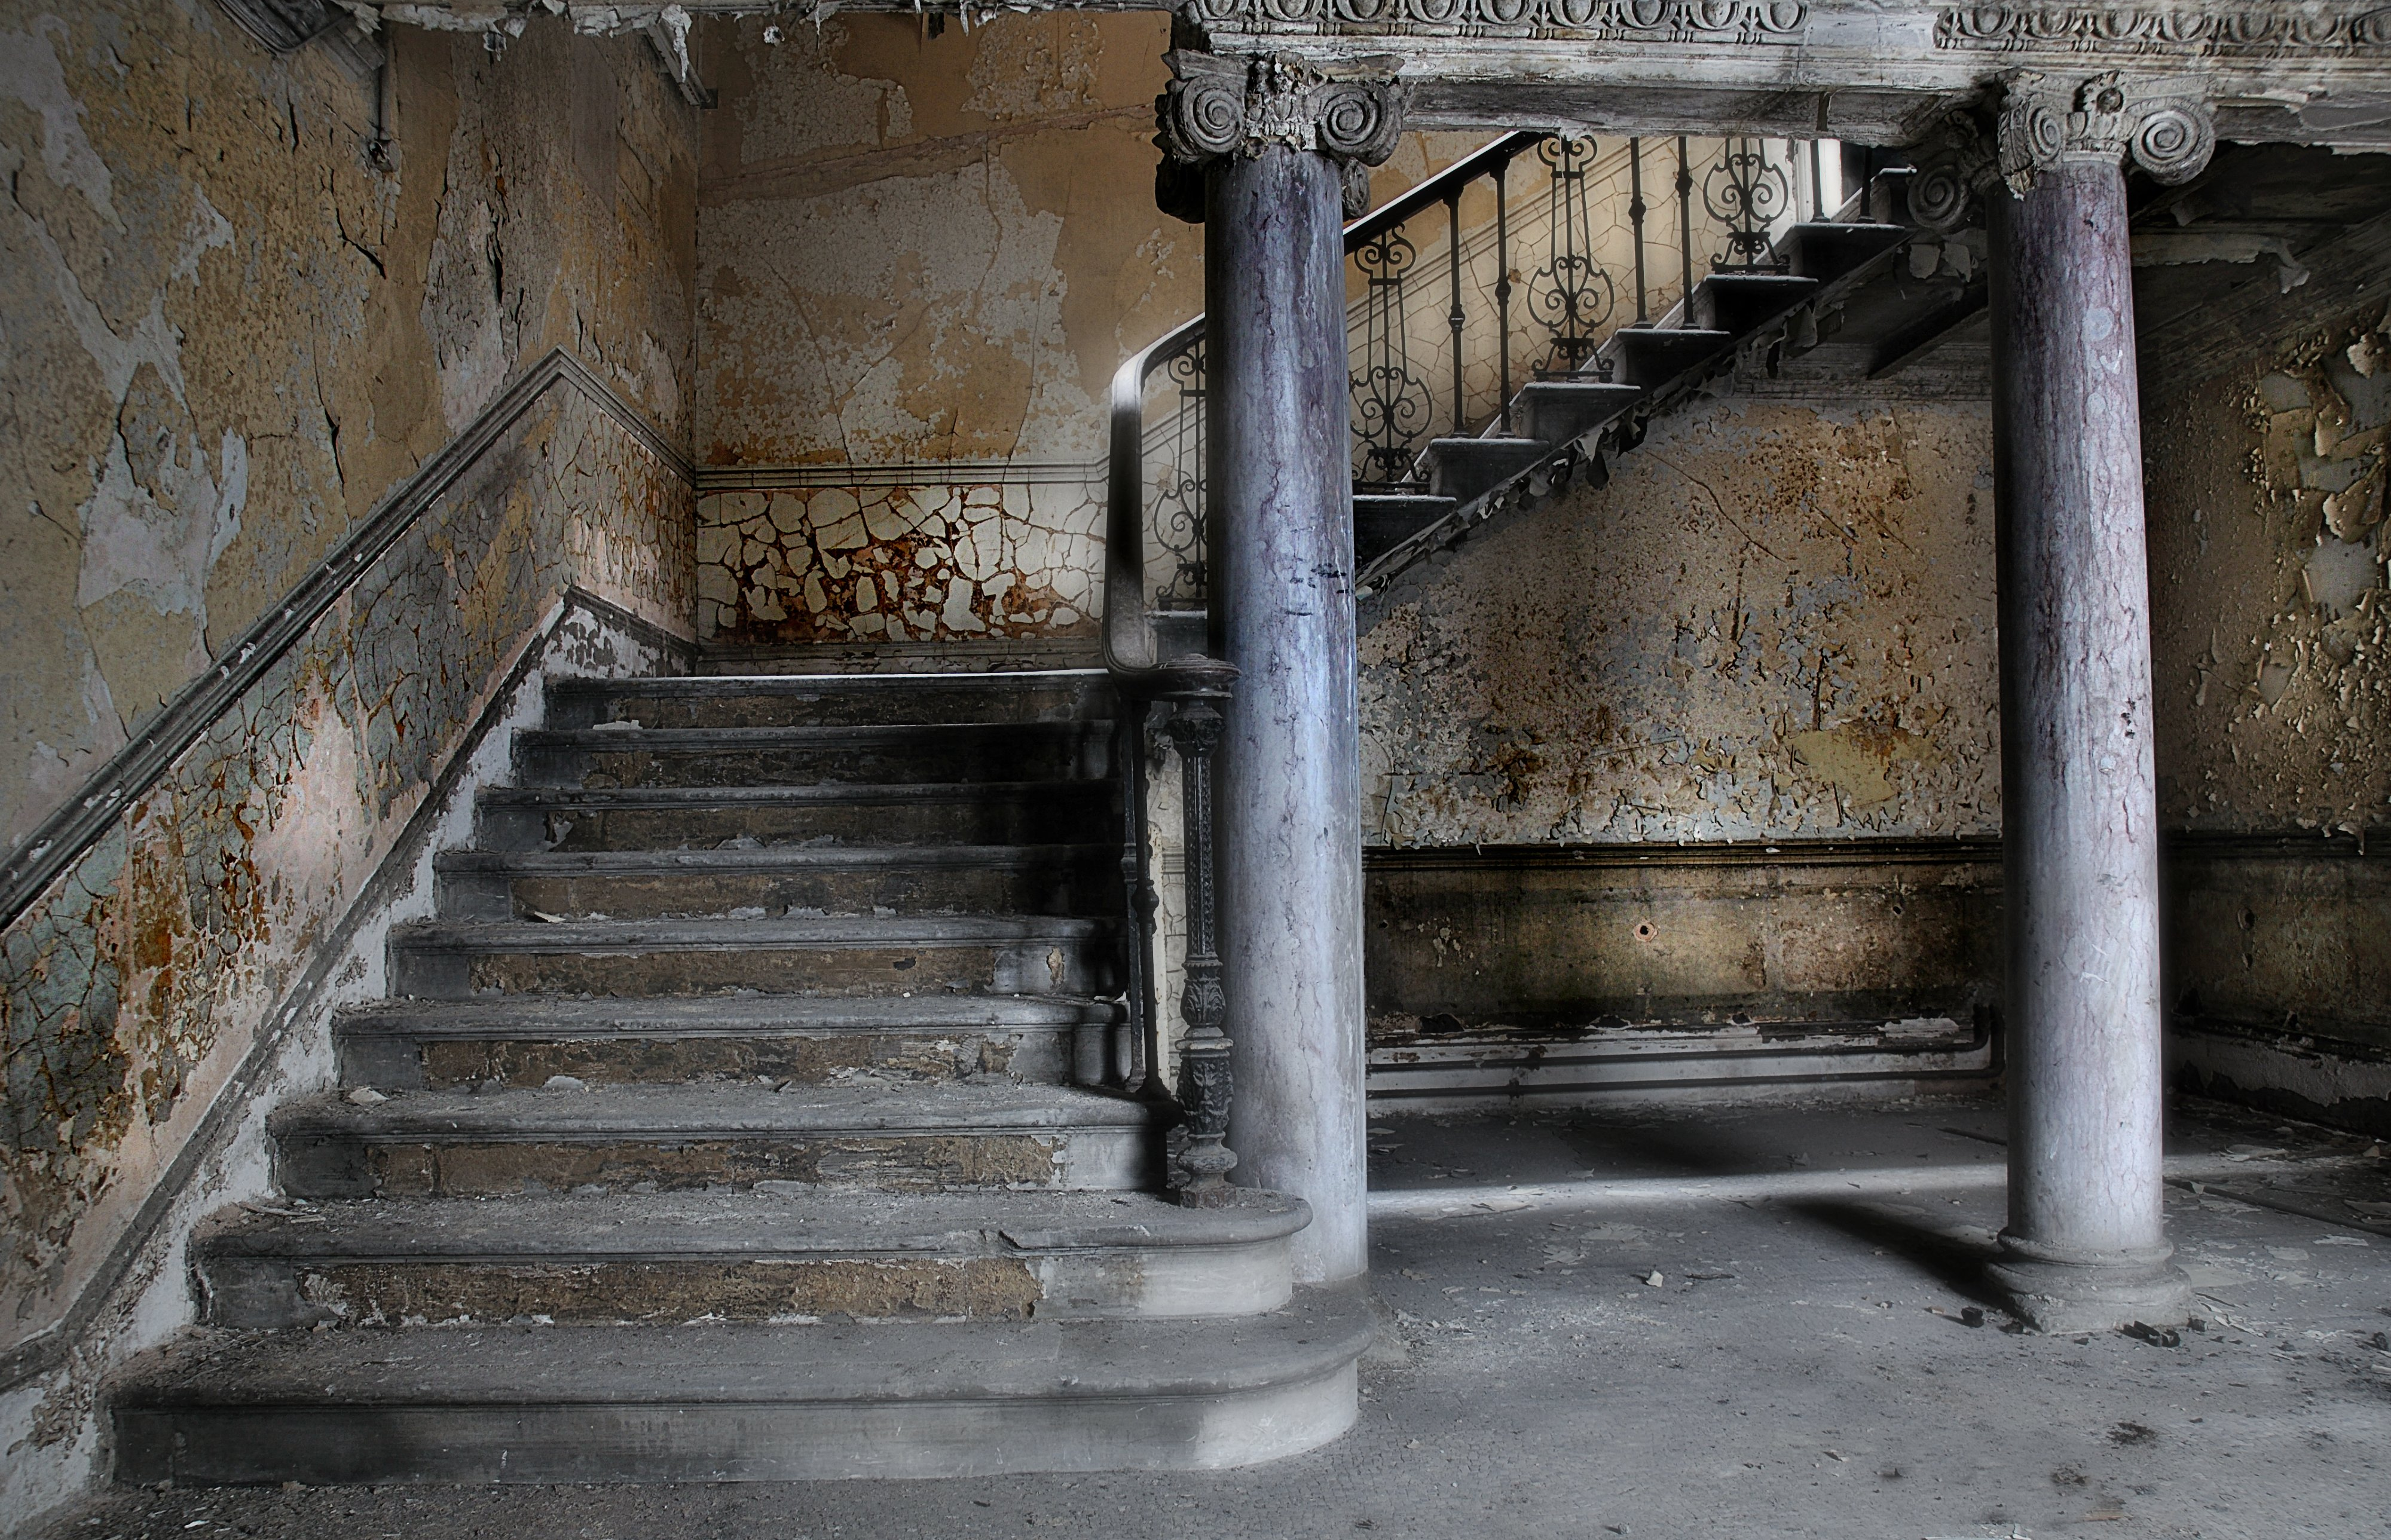 Exciting Abandoned Buildings As Wells As Abandoned Buildings ...